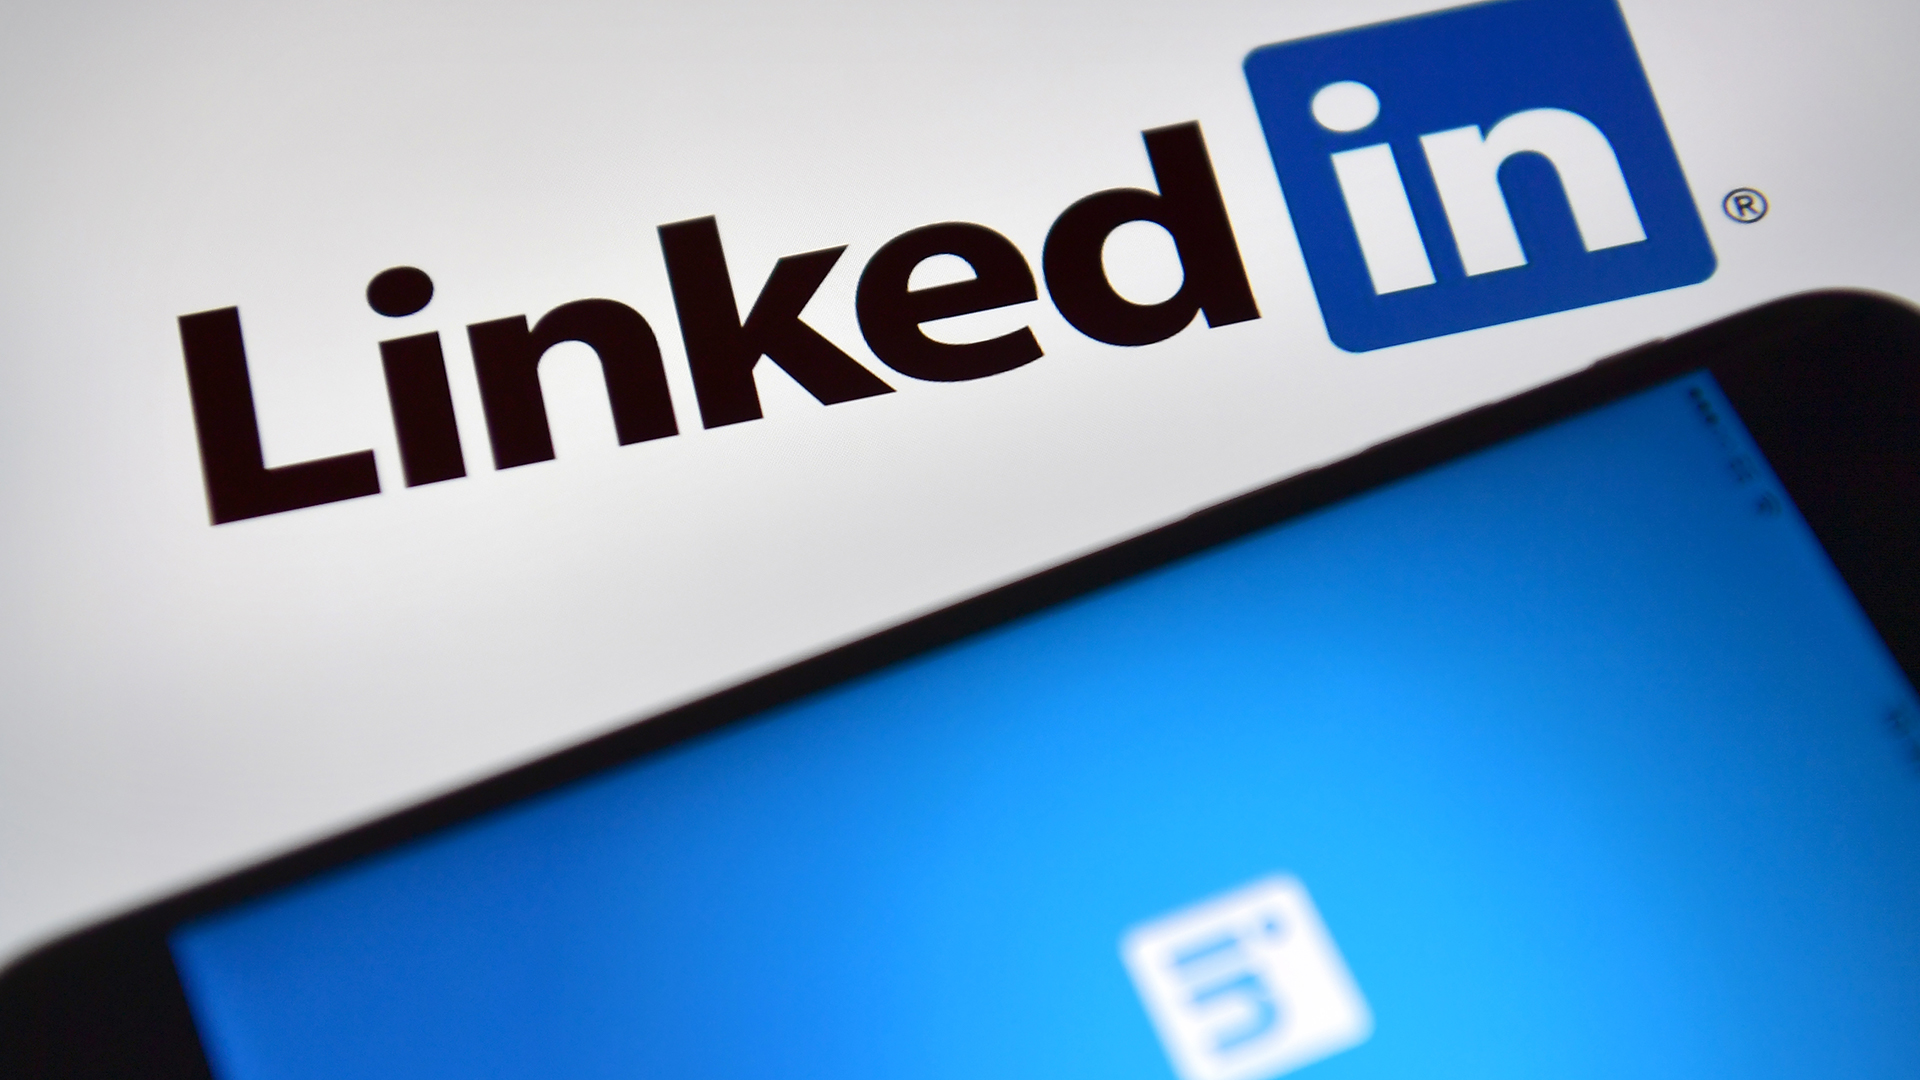 LinkedIn cautions users about recognizing fake jobs